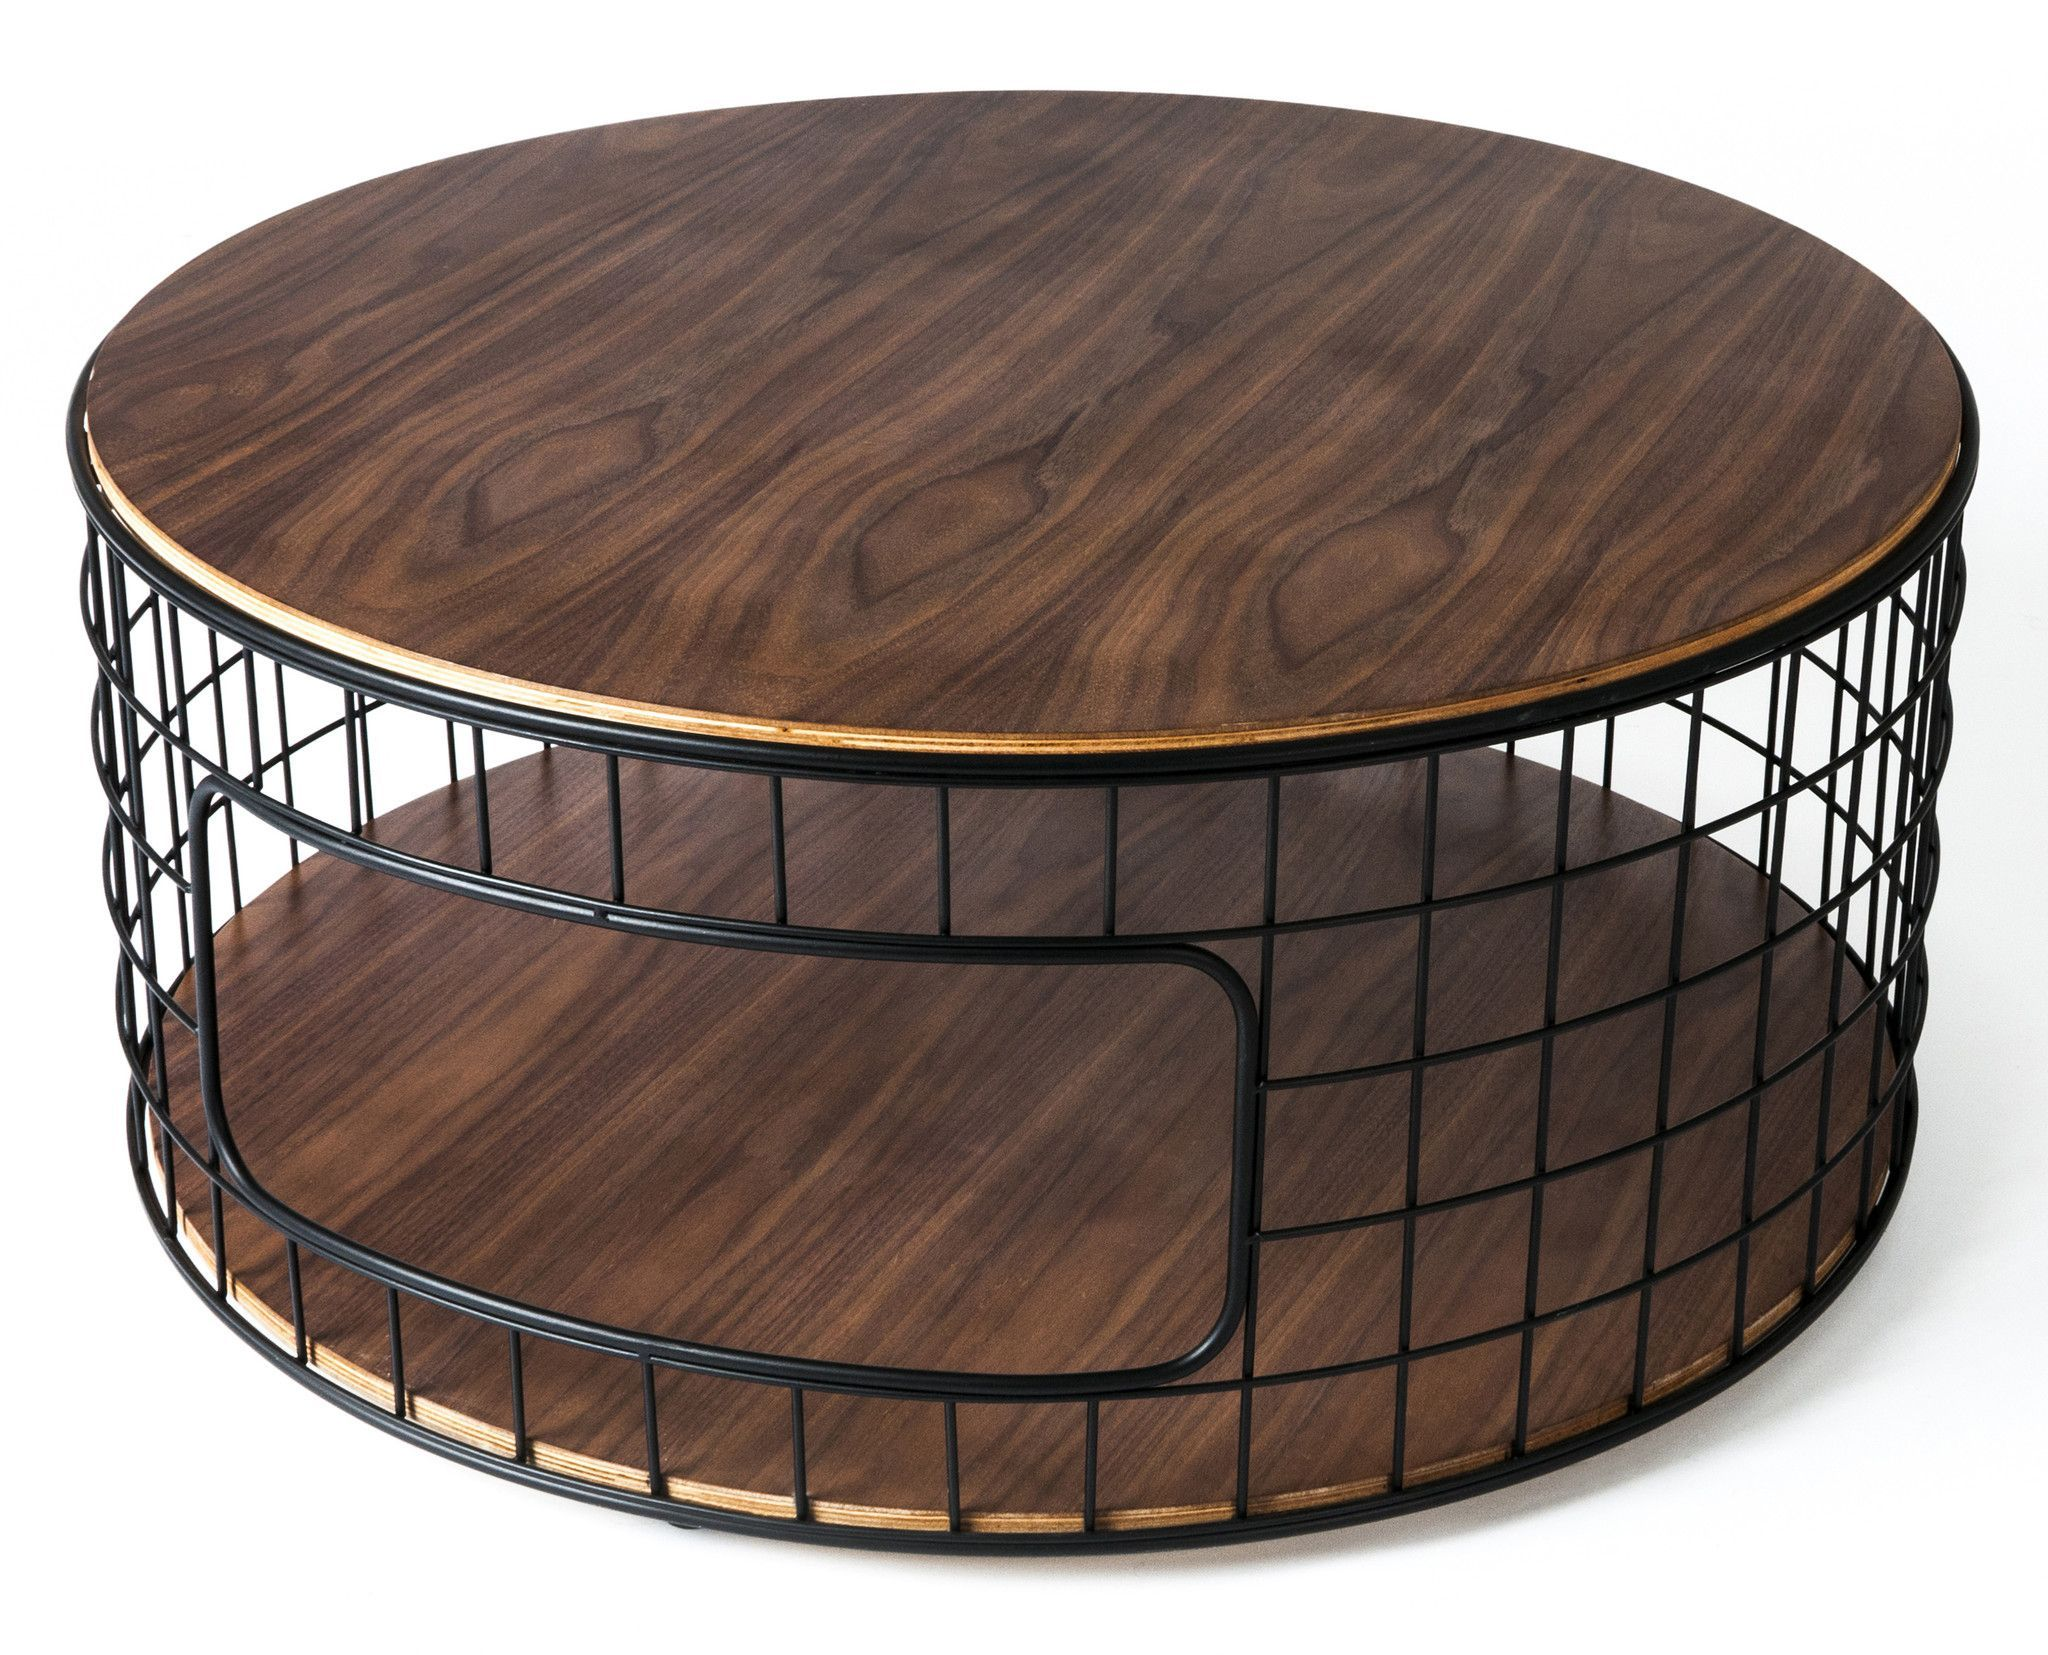 Wireframe Coffee Table Coffee Table Contemporary Coffee Table Coffee Table Accents [ 1655 x 2048 Pixel ]